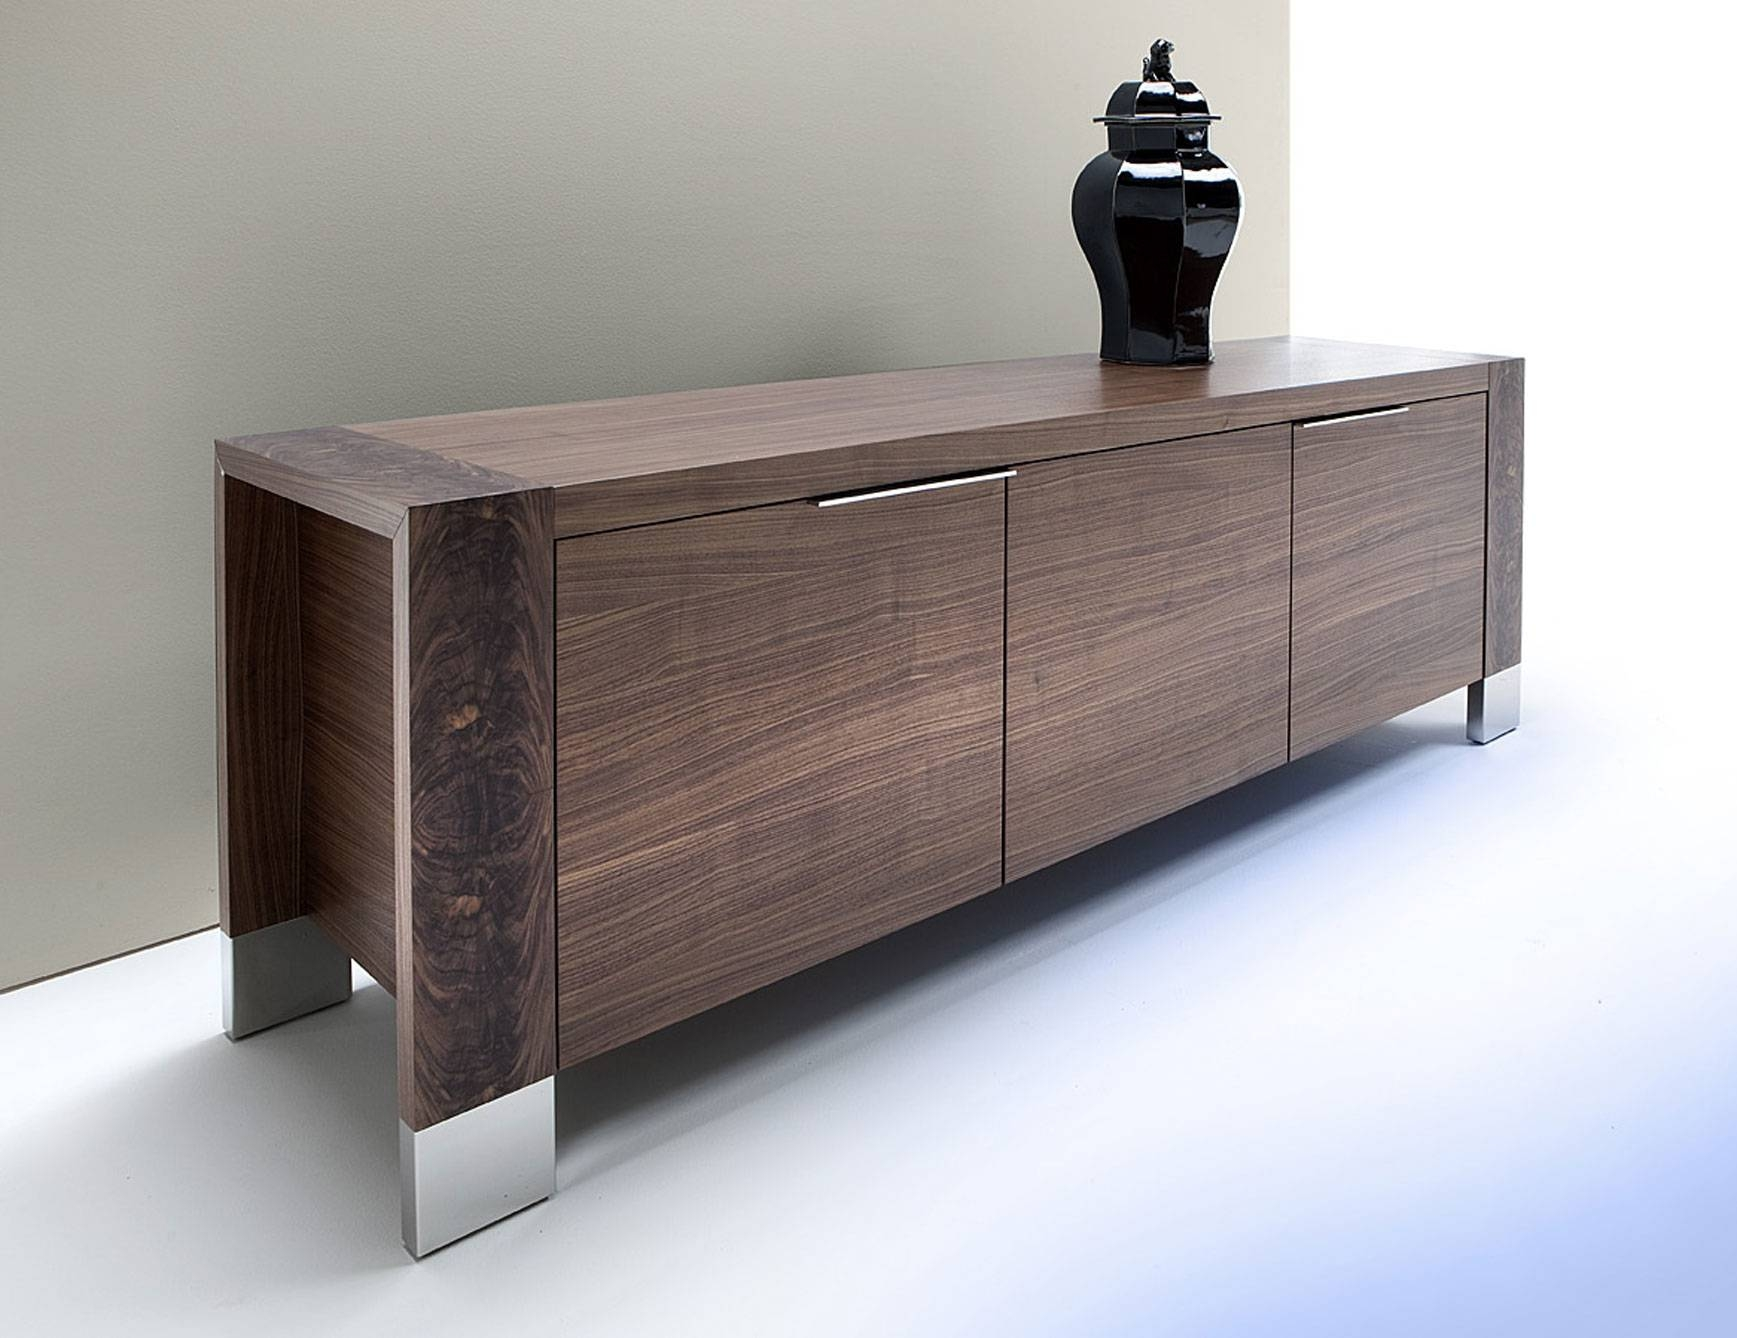 New Credenzas And Sideboards - Bjdgjy throughout Credenza Buffet Sideboards (Image 11 of 15)